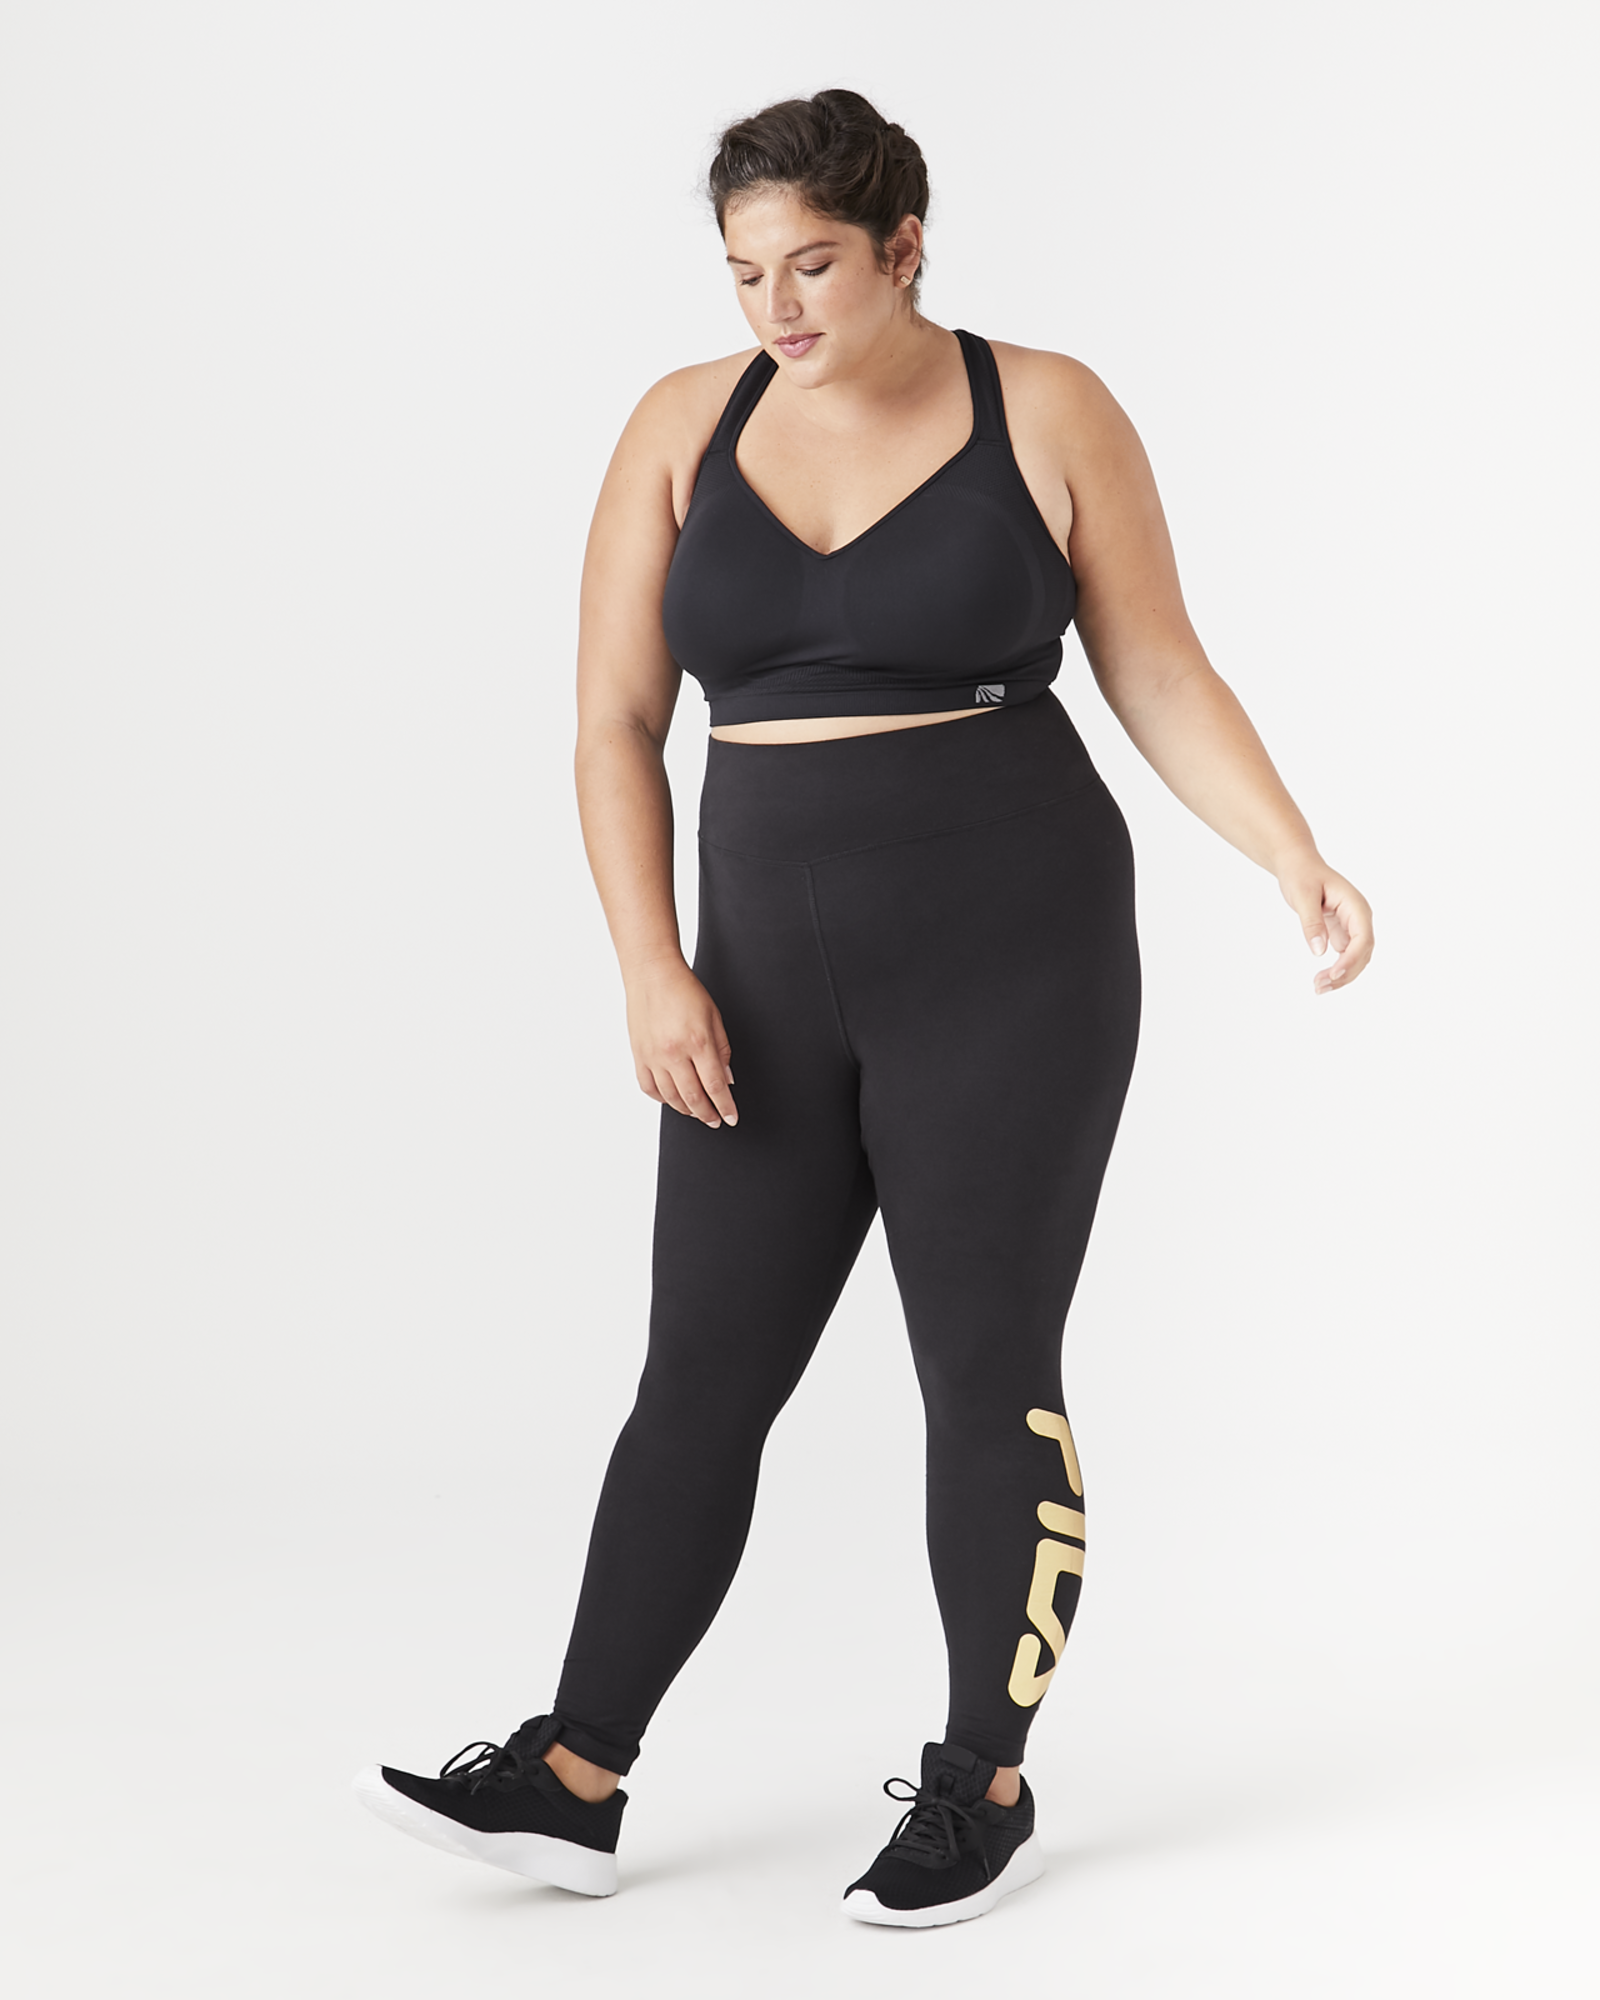 FILA Cora Full-Length Legging - Black / Gold, Size 3X (22-24), Dia&Co